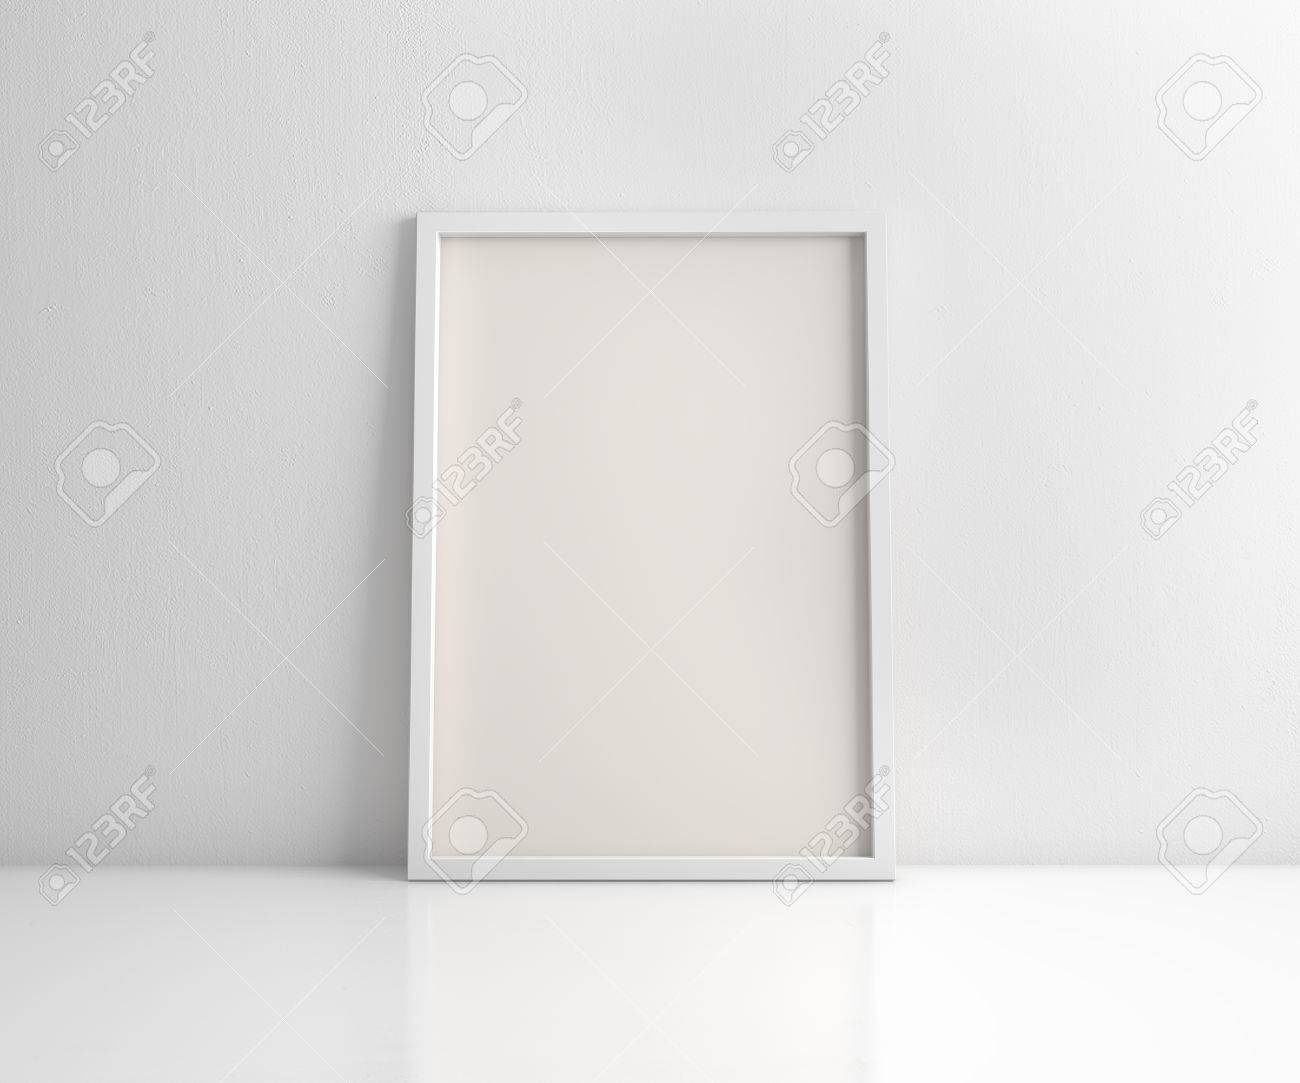 White Frame On The White Wall And Floor 3d Rendering Stock Photo ...